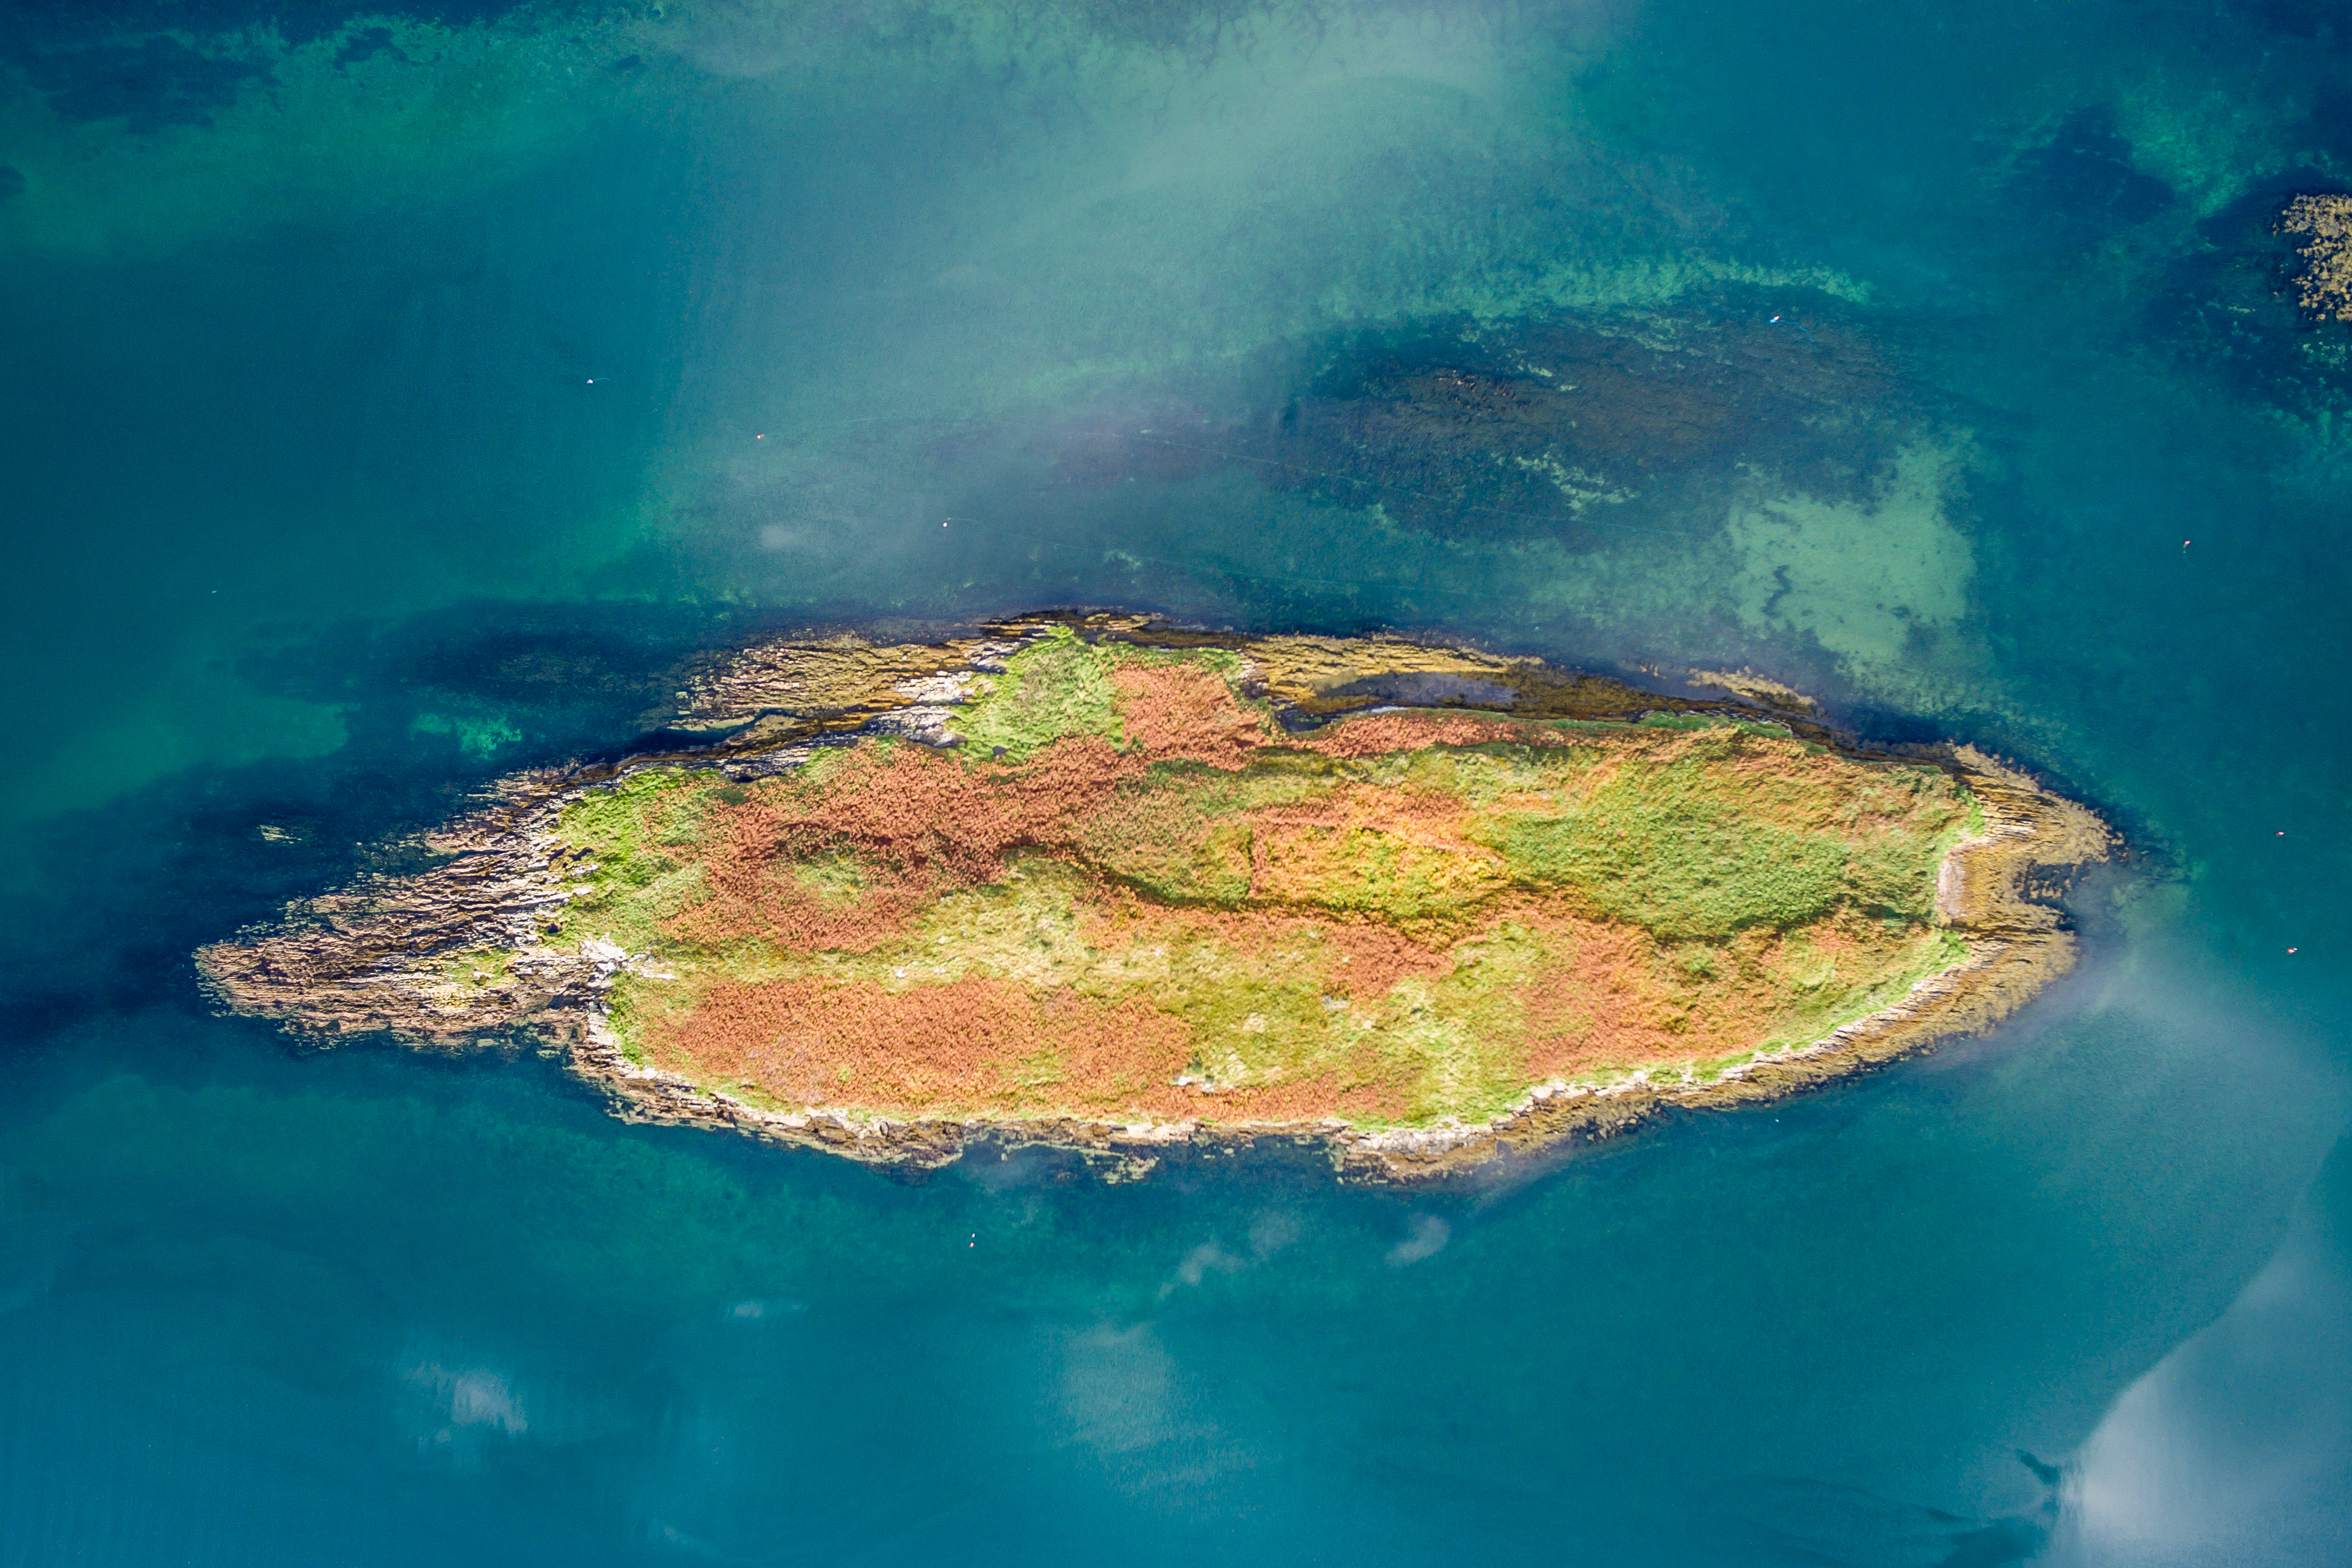 Mannions Island - Ireland, Europe - Private Islands for Sale